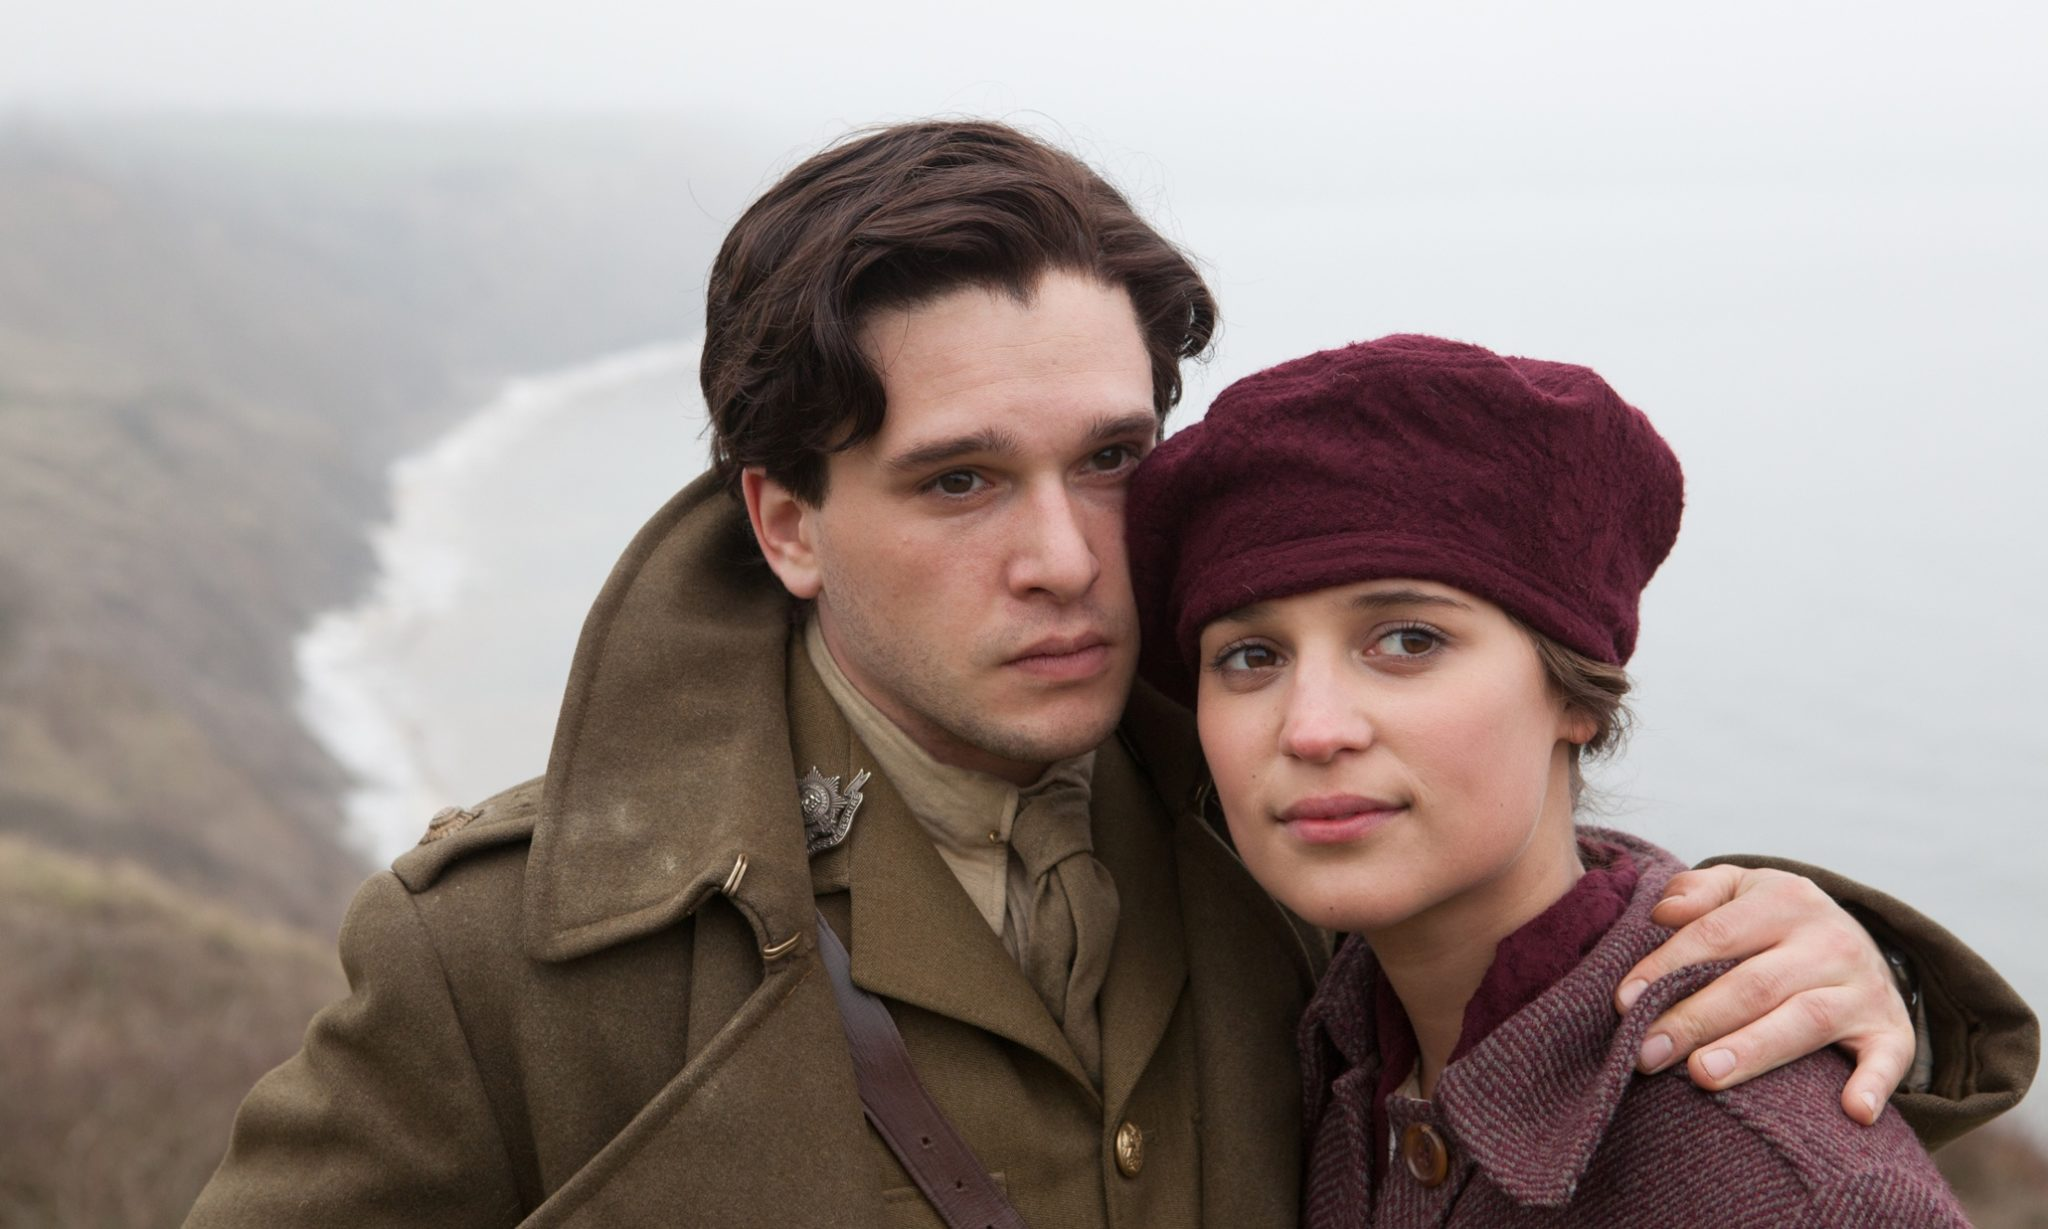 Hayley Atwell and Kit Harington as Vera Brittain and fiance Roland Leighton in the 2015 retelling of Testament of Youth